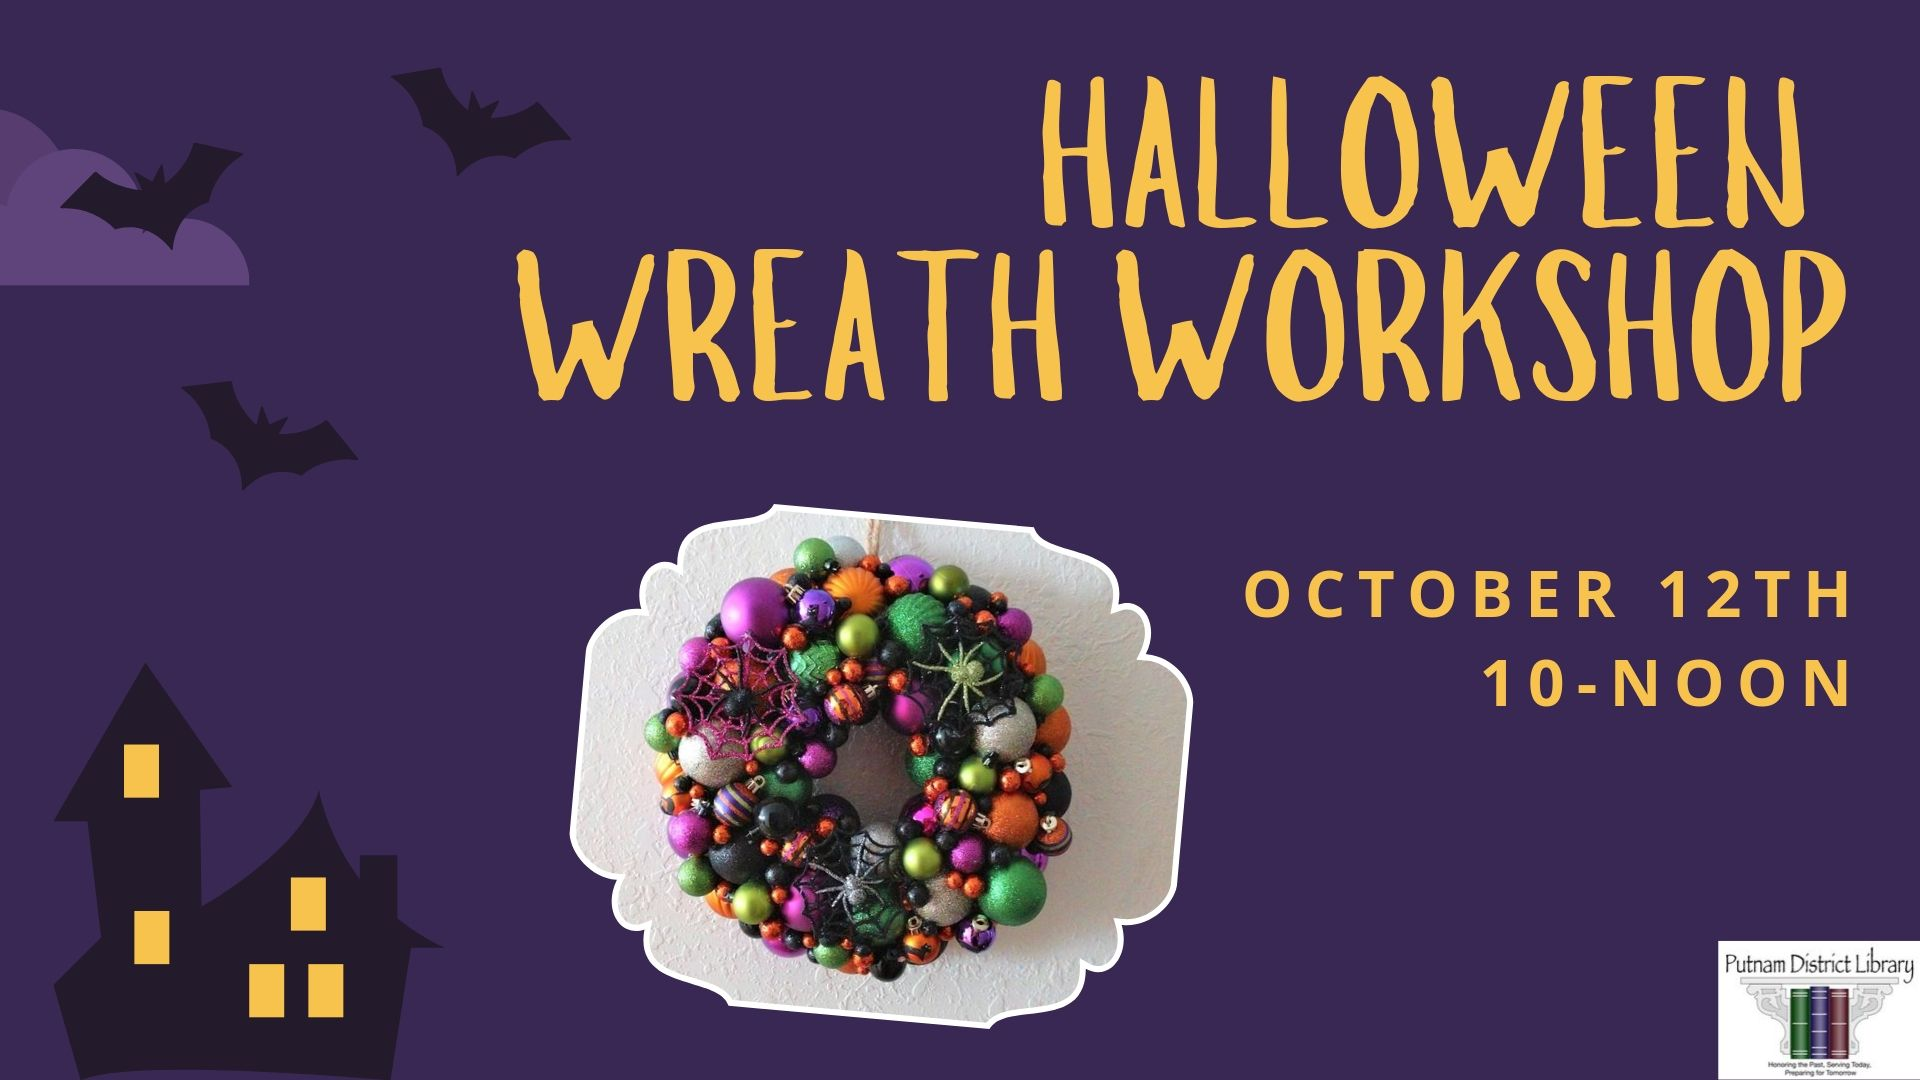 Halloween Wreath Workshop